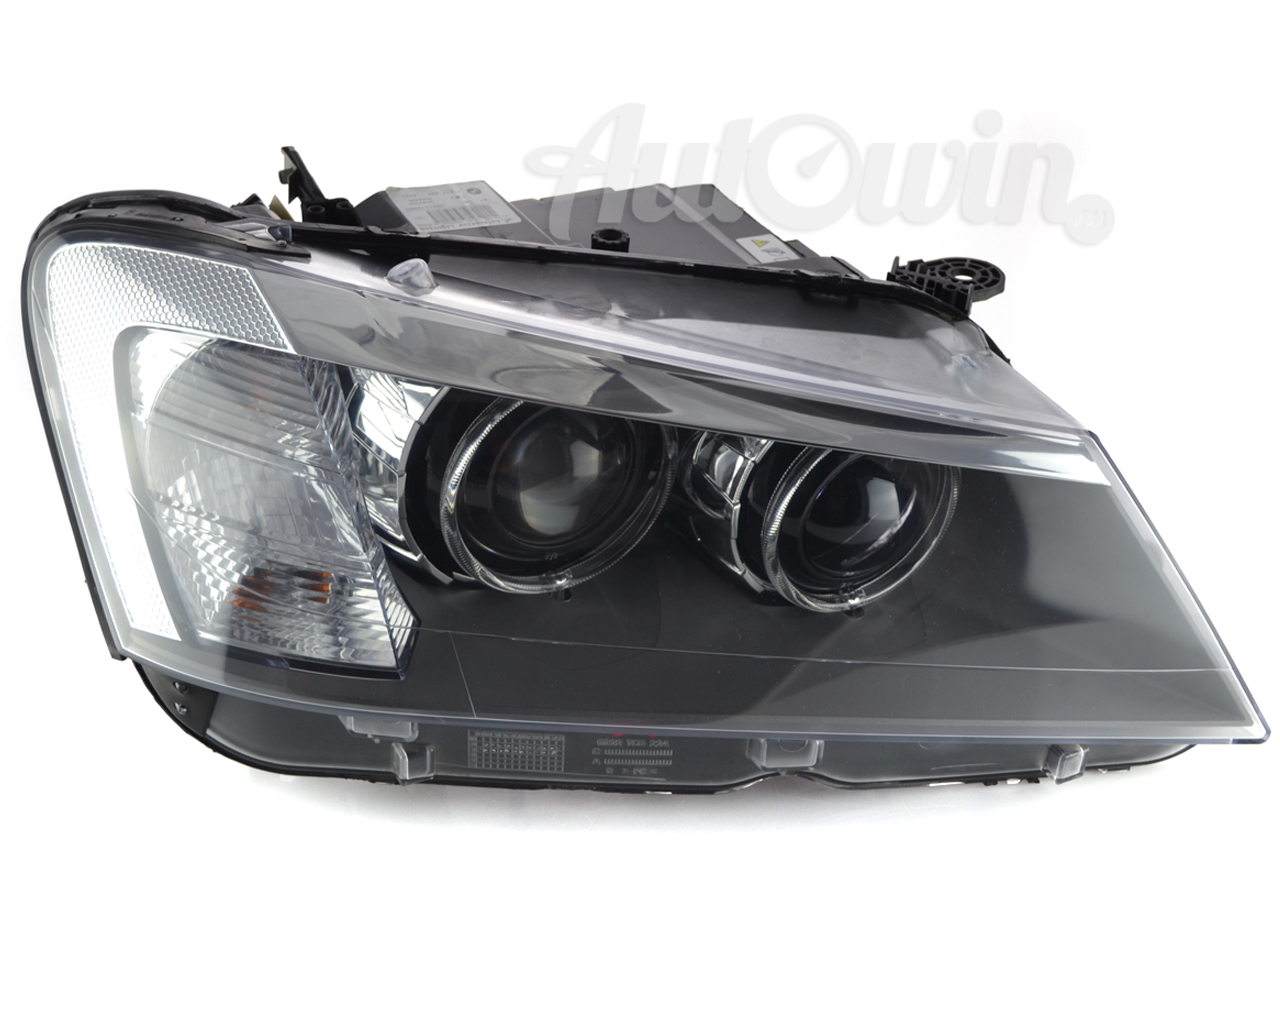 Bmw X3 Series F25 Bi Xenon Adaptive Headlight Rh Right